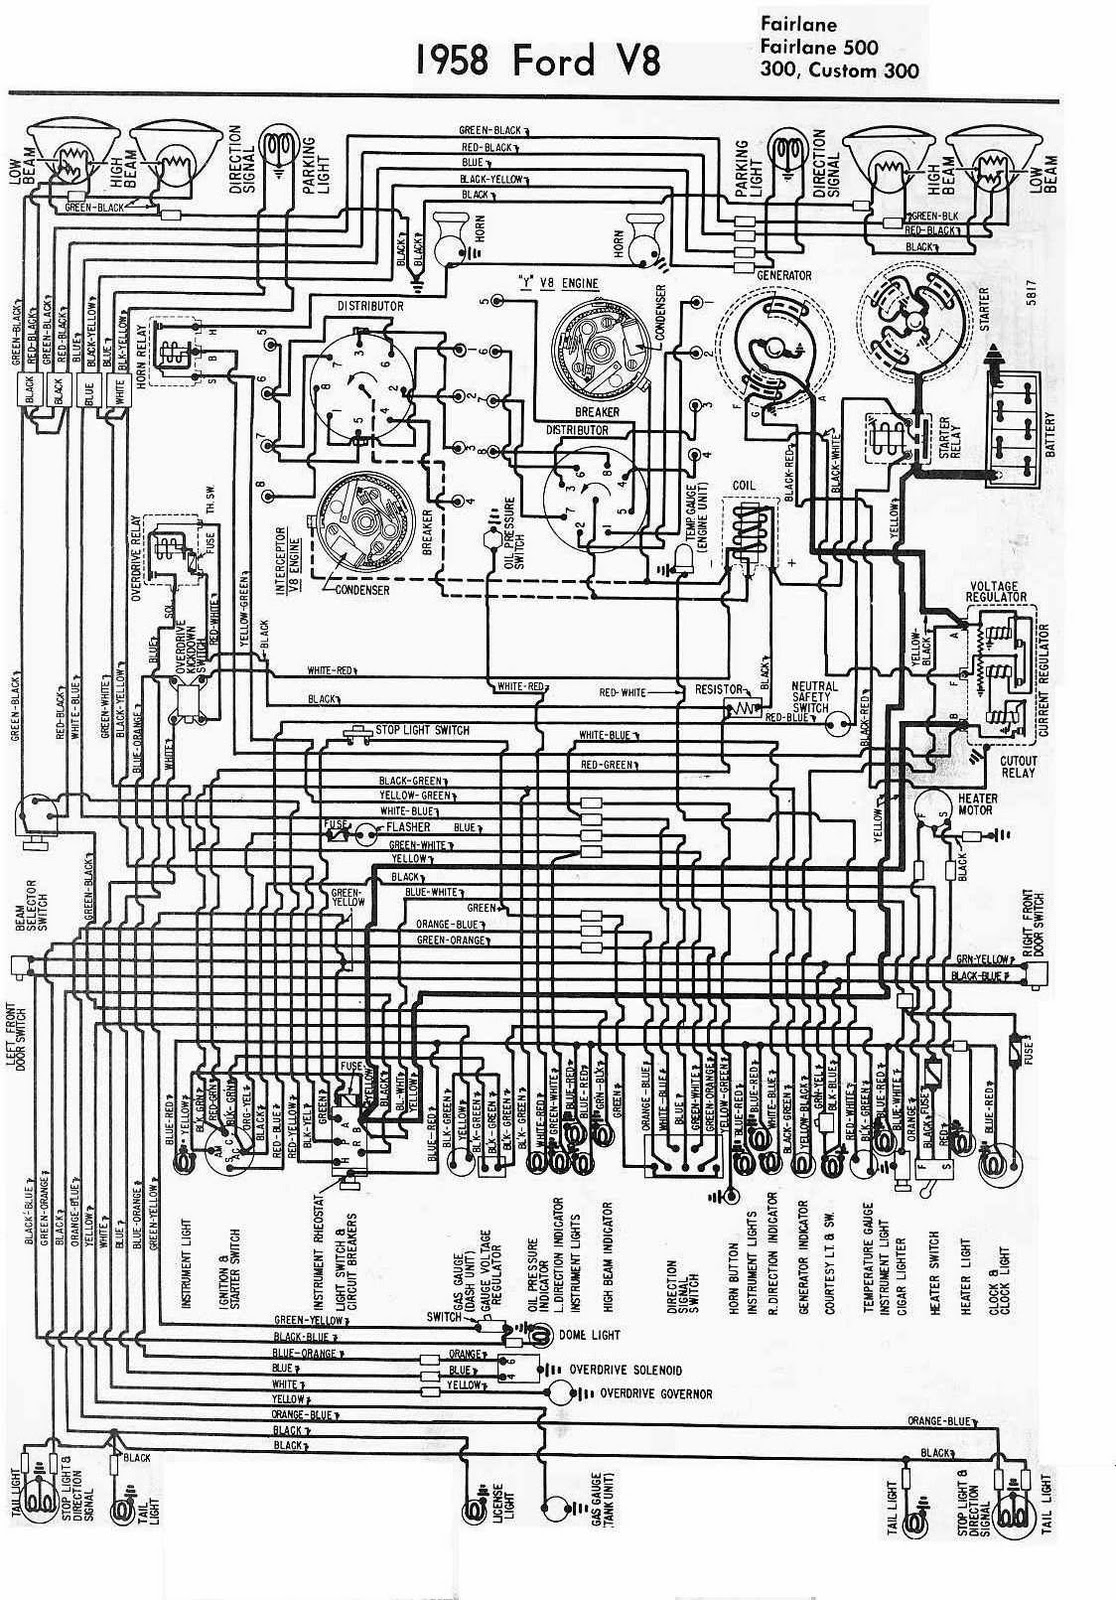 ford factory wiring diagrams wiring diagram ford f250 the wiring diagram ford f250 wiring diagram nodasystech wiring diagram